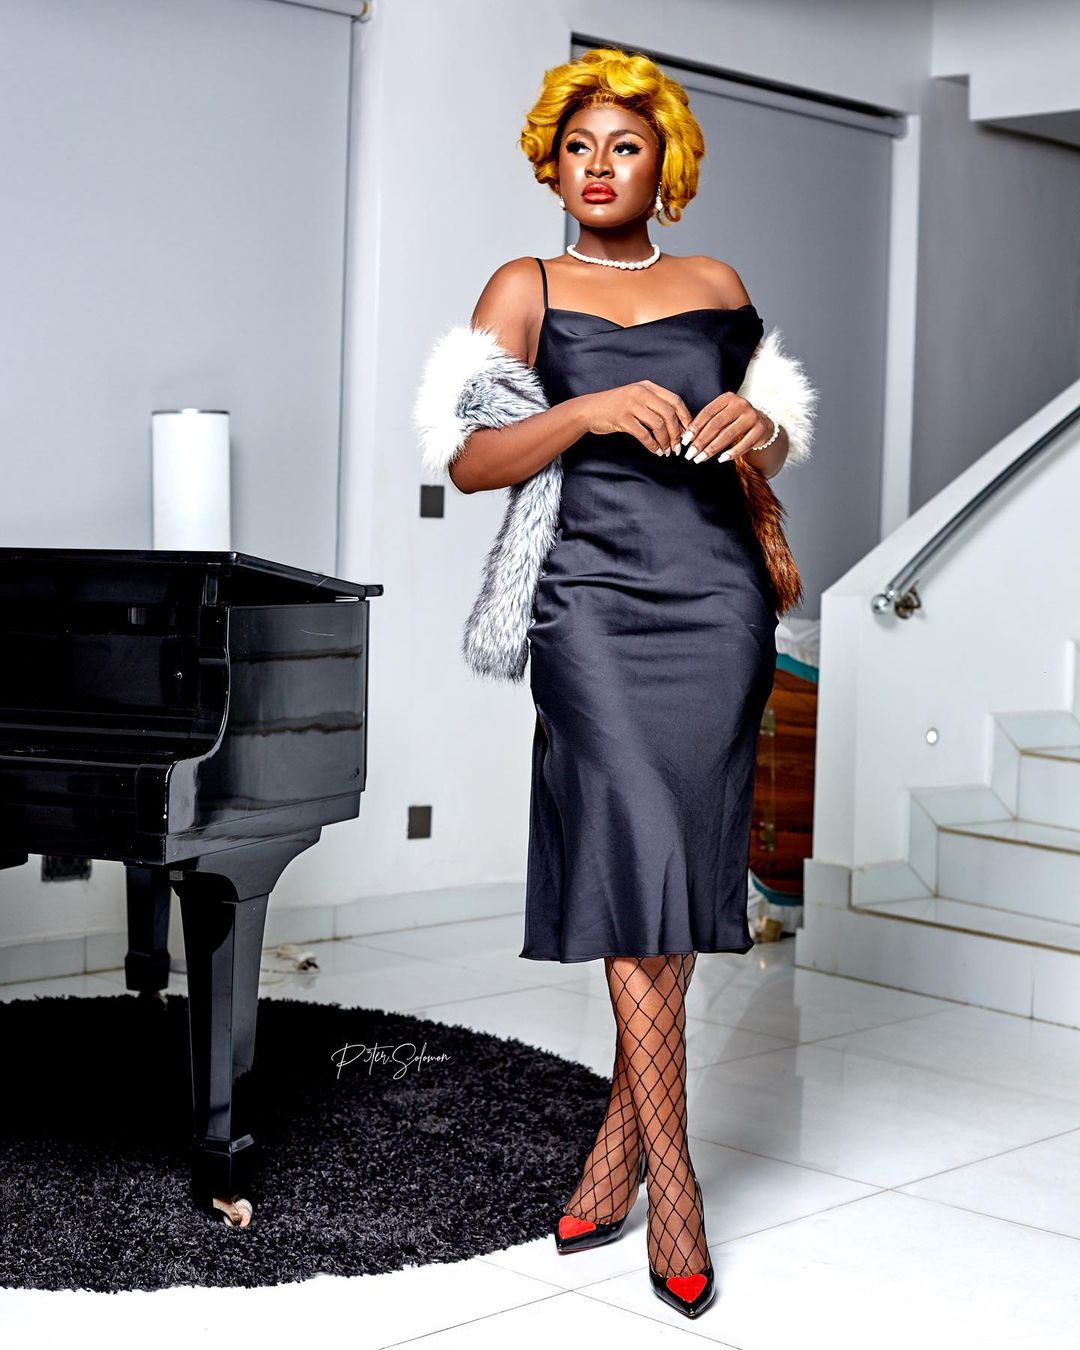 Nothing will make me date a married man, do butt surgery - Alex Unusual